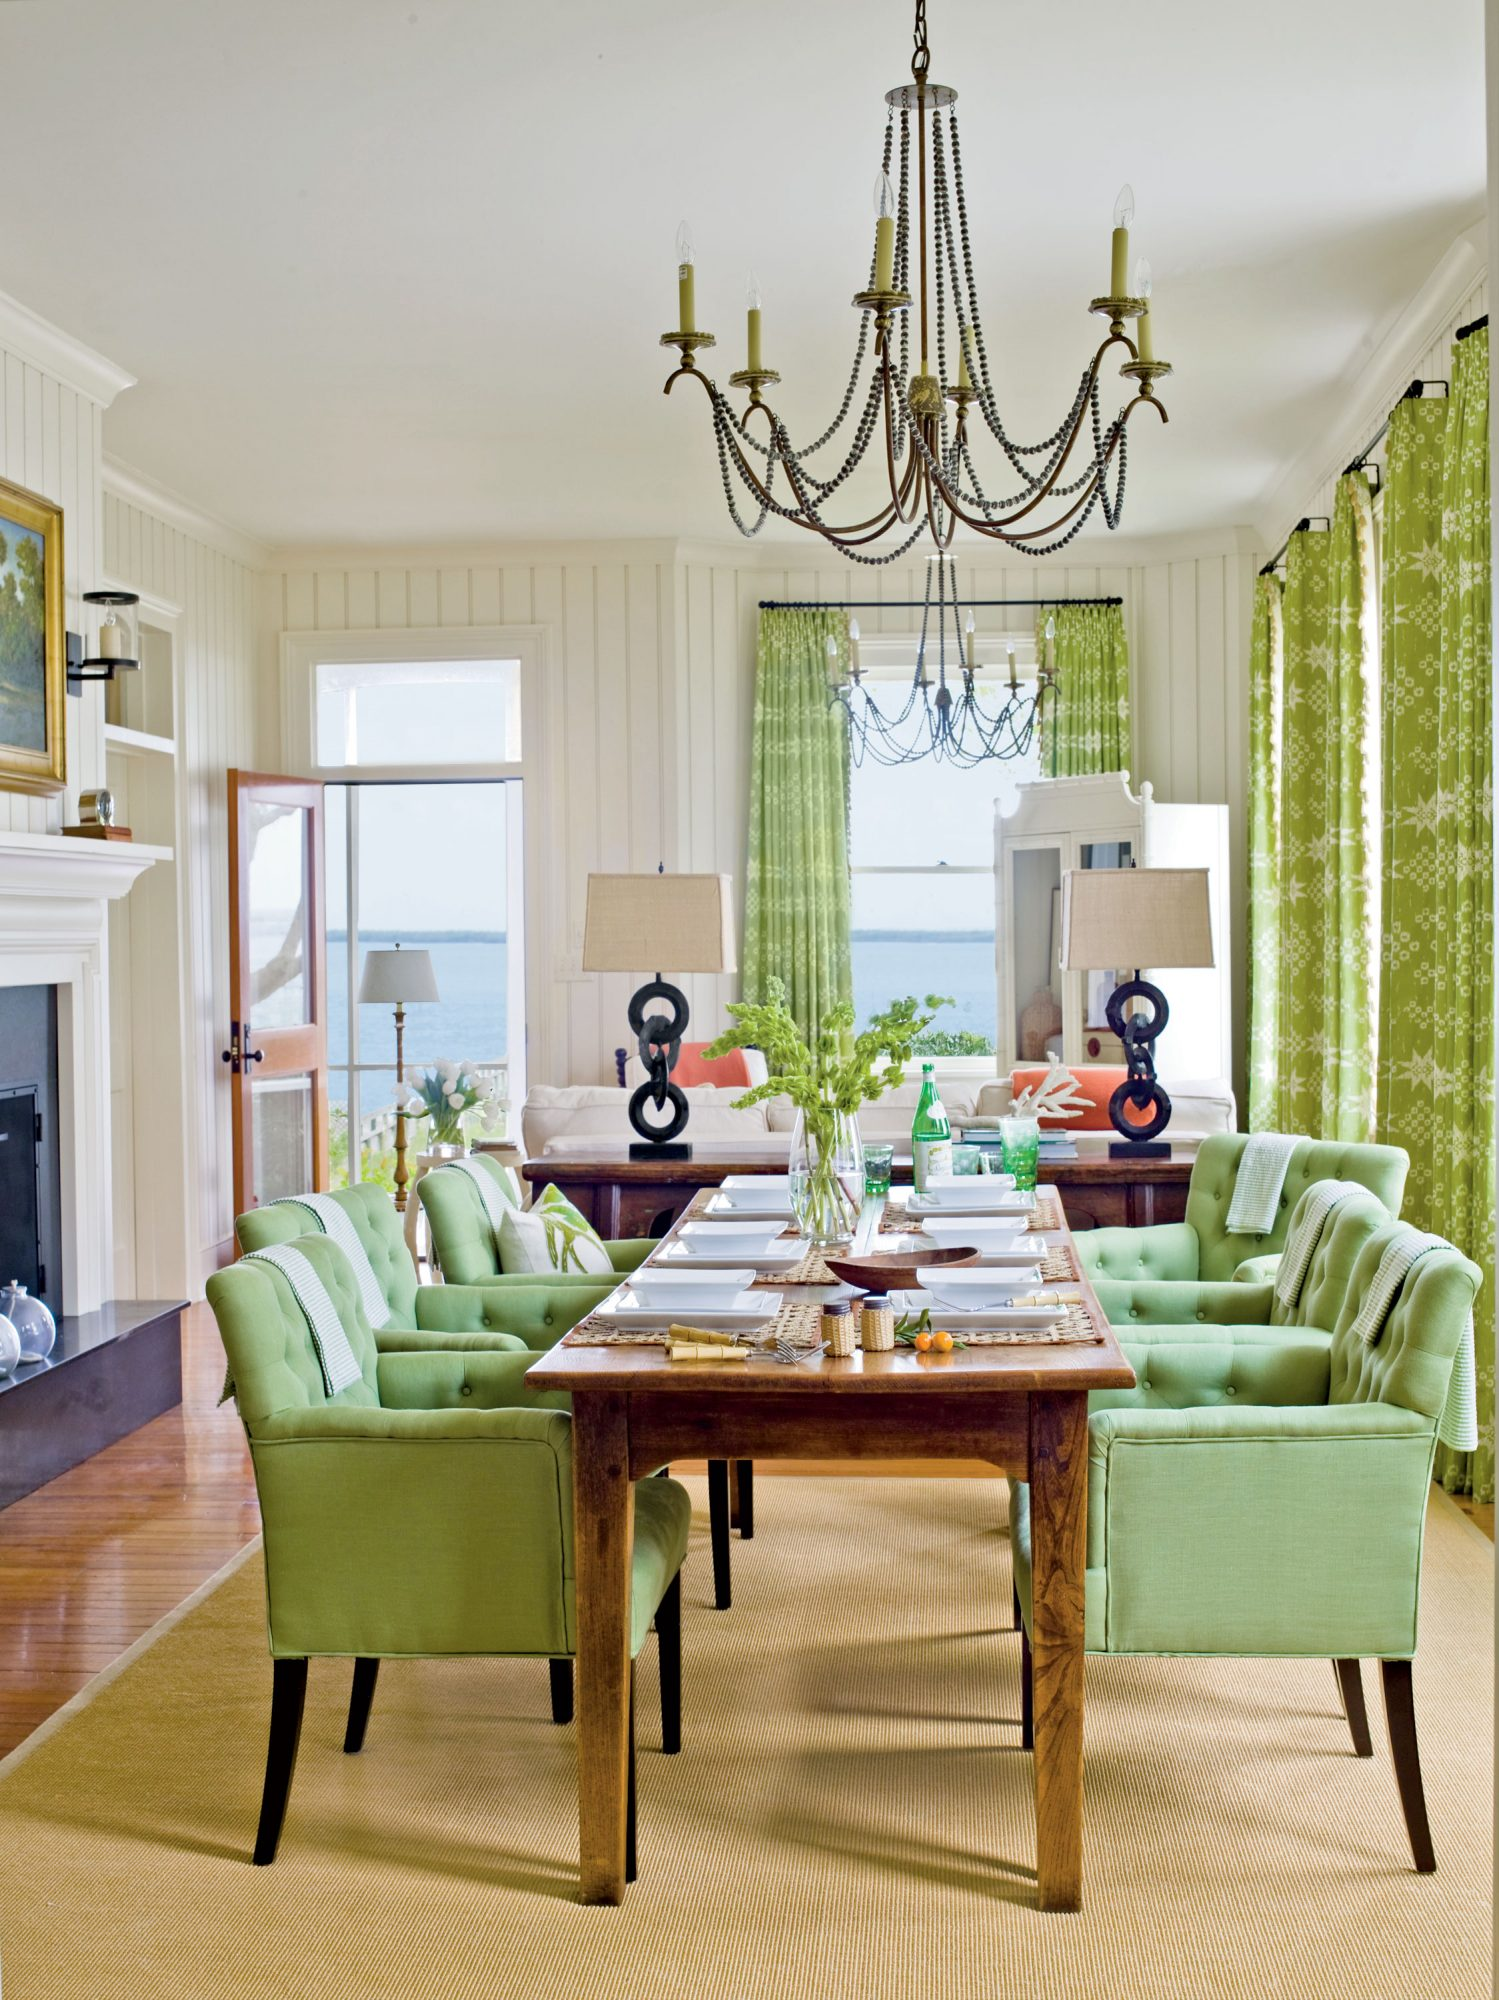 The living and dining room areas were enlivened with punches of green and coral. Coastal accents—sea grass rugs, coral pieces, bamboo flatware—are scattered throughout to reflect South Carolina's beach-loving lifestyle.